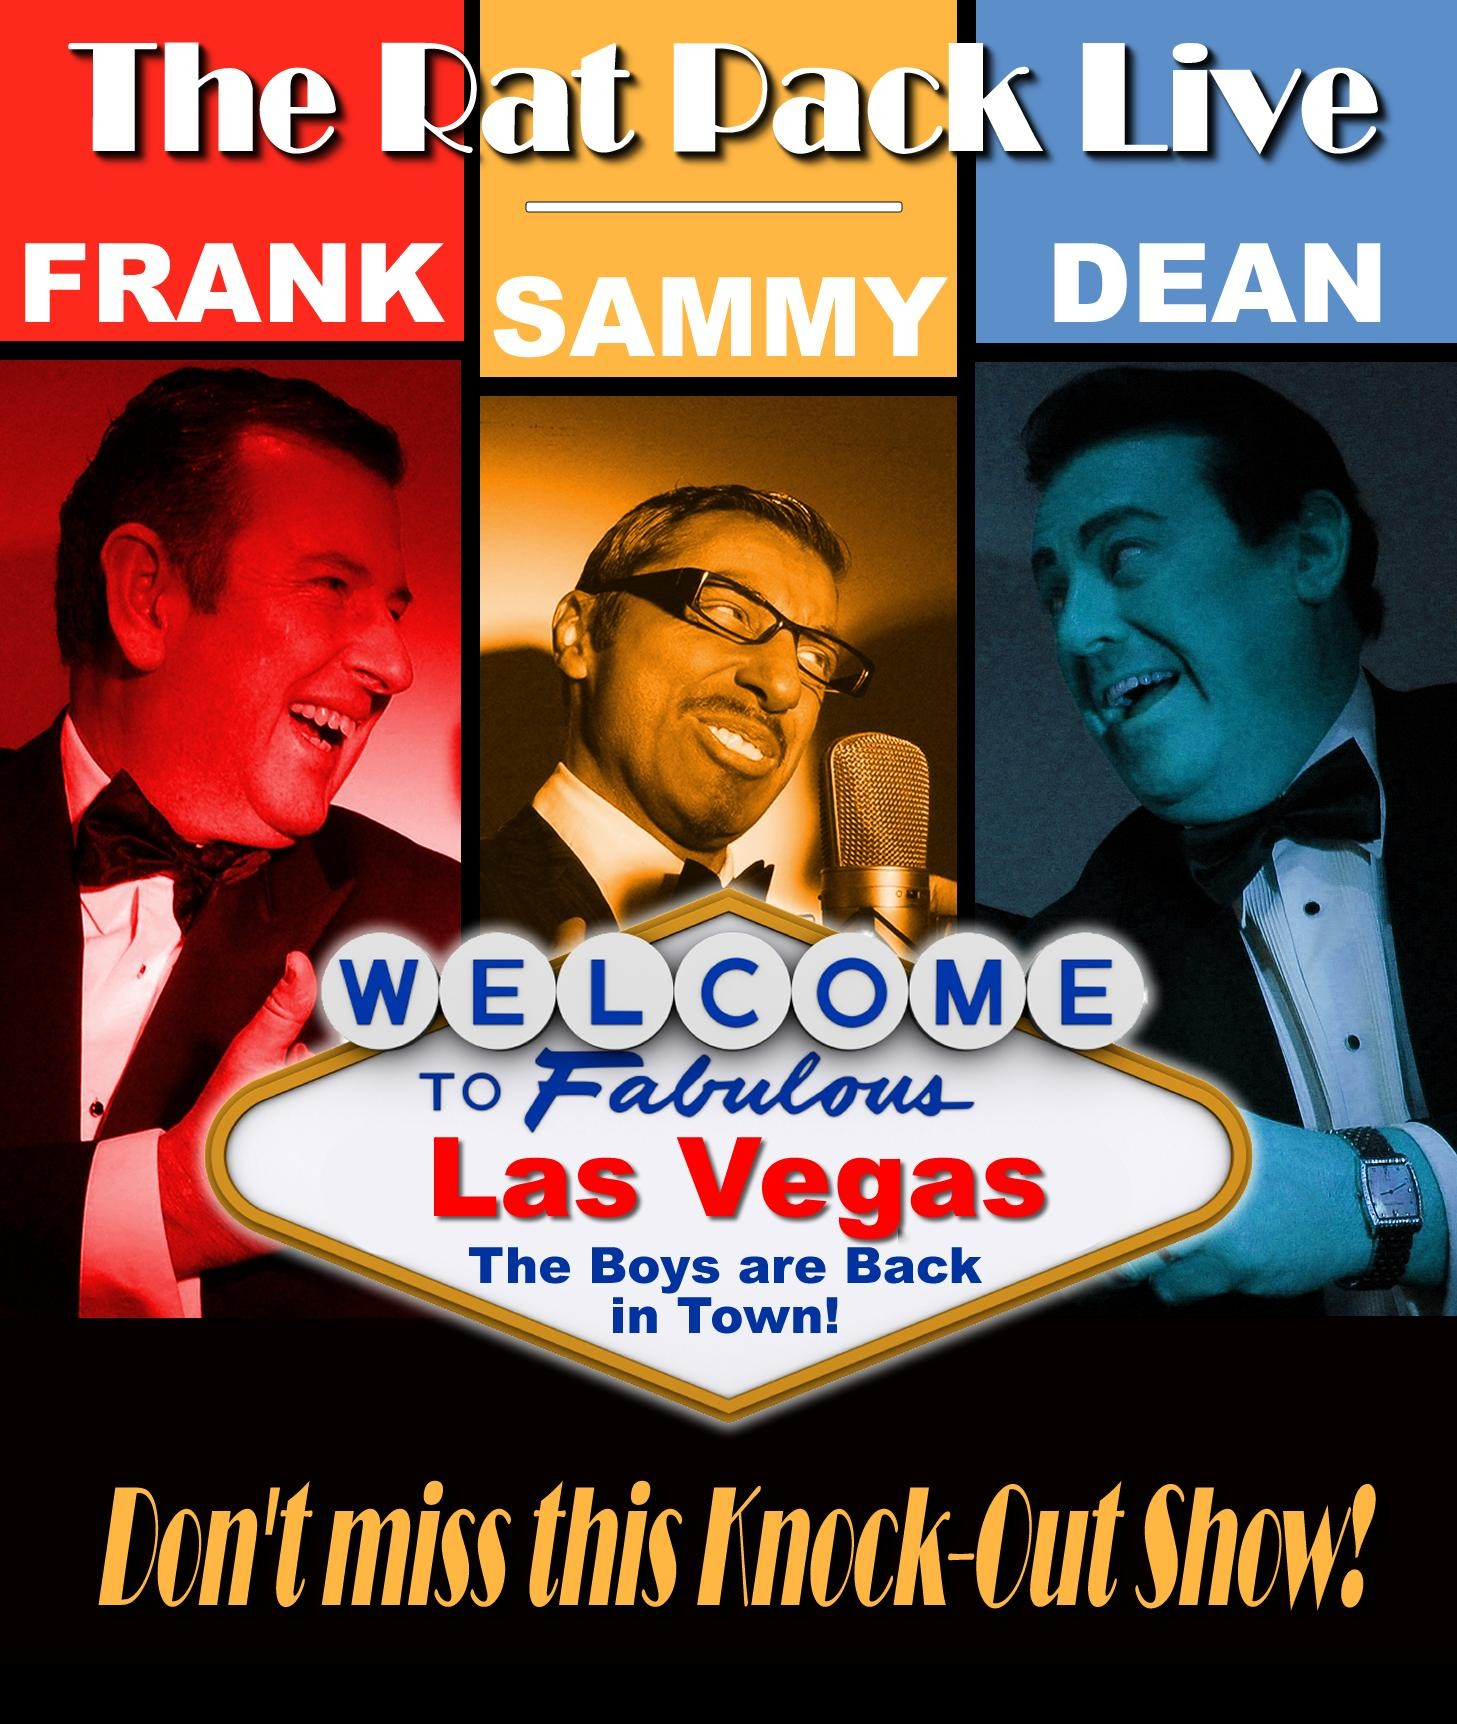 The Rat Pack tribute!